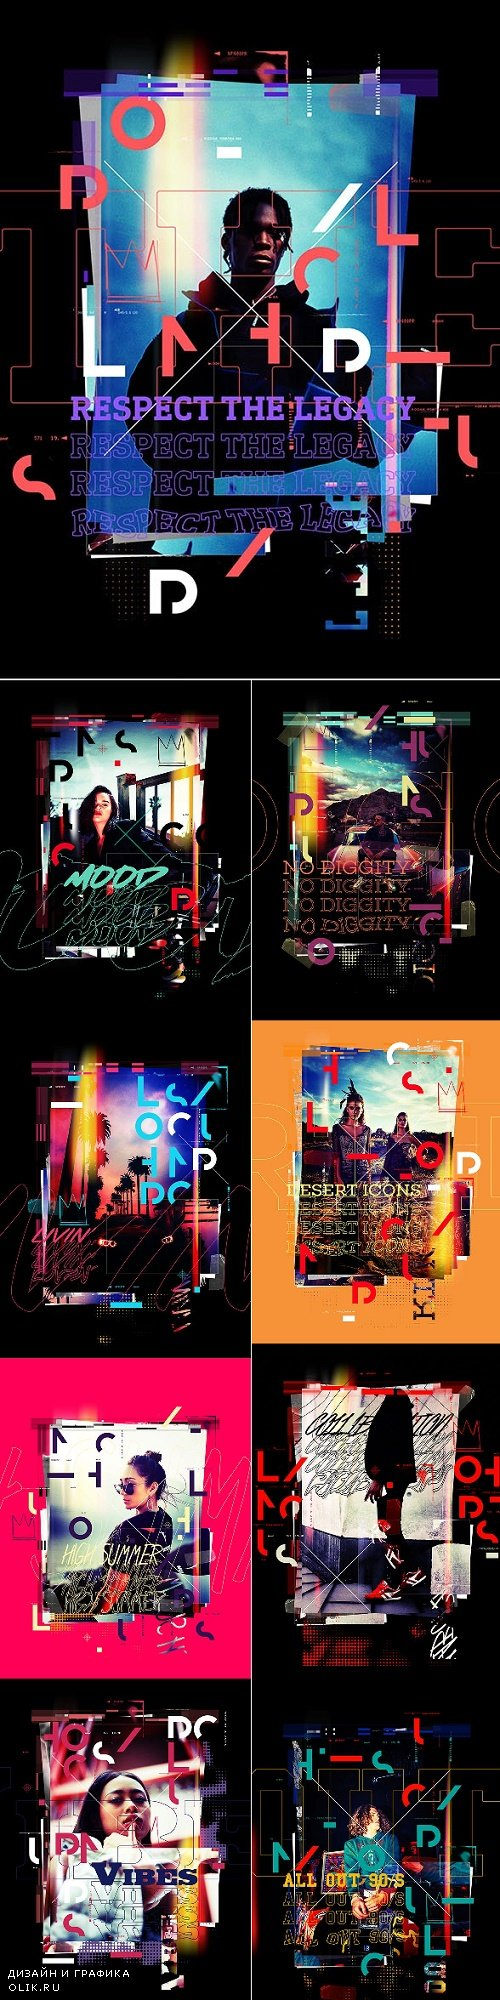 Lomography Typography Poster PHSP Action - 24518011